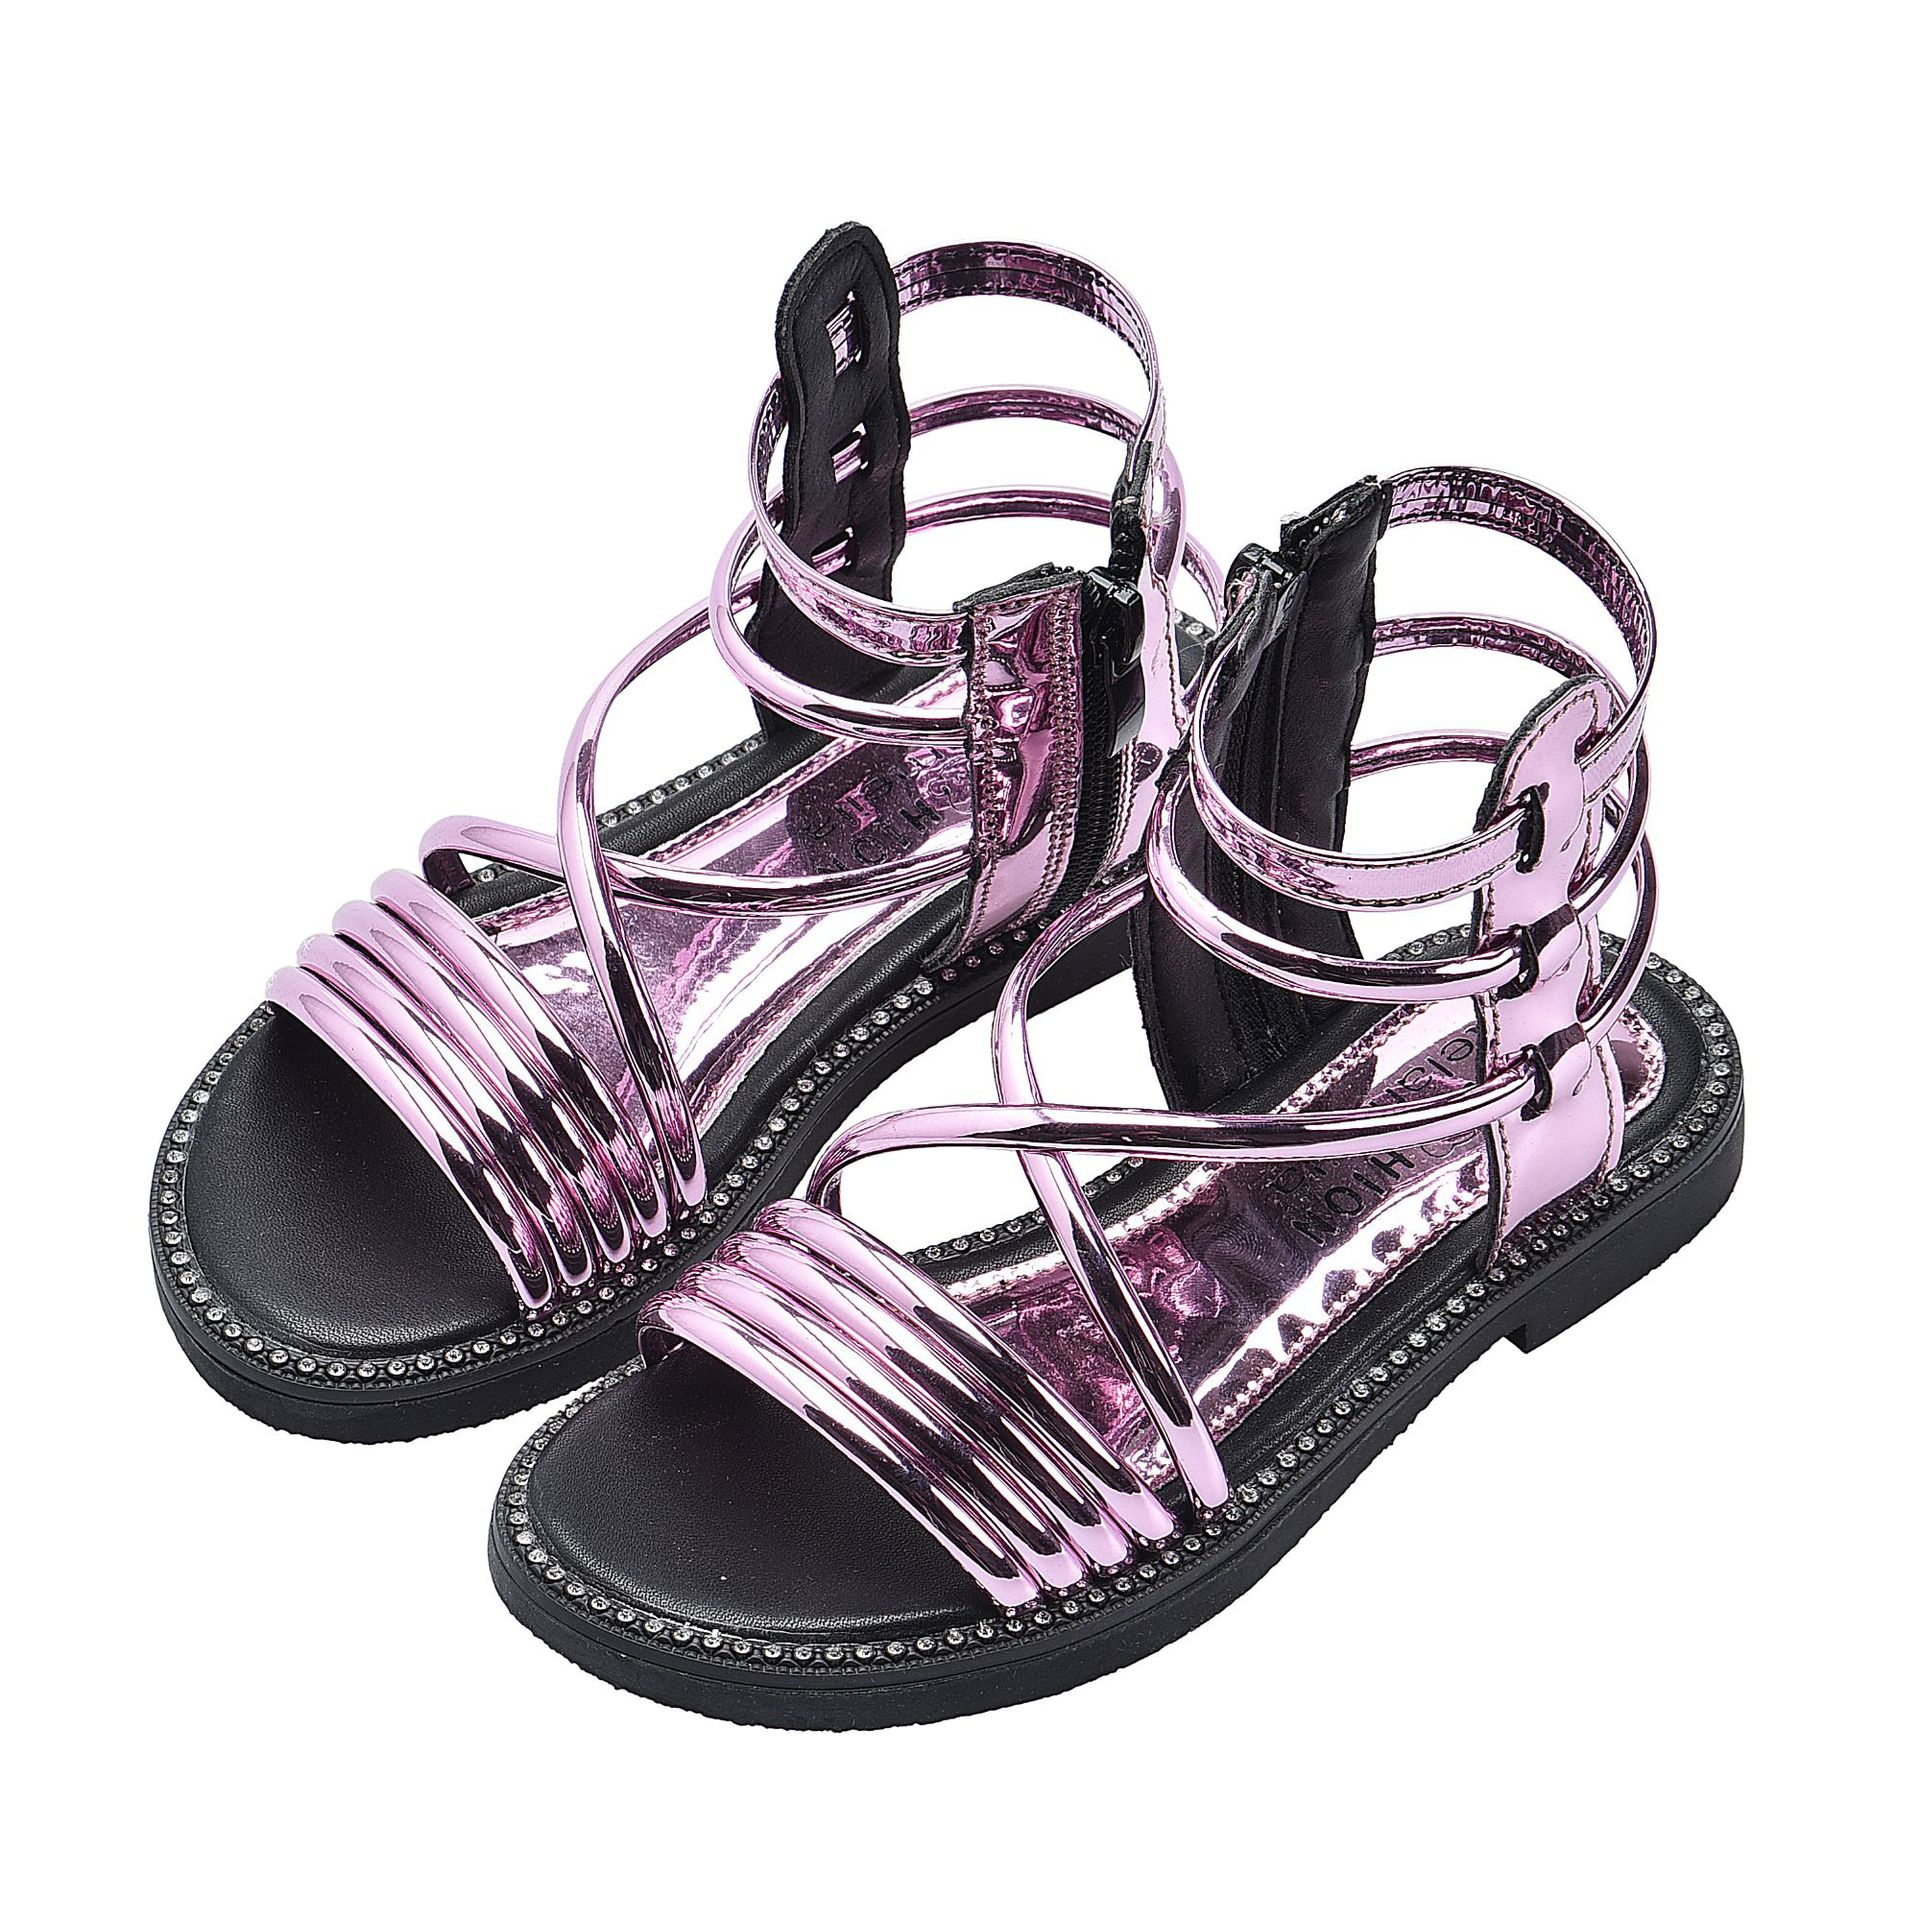 Summer Fashion Roman High-top Girls Sandals Kids Gladiator Sandals Toddler Child Cool Girls Patent Leather High Quality Shoes